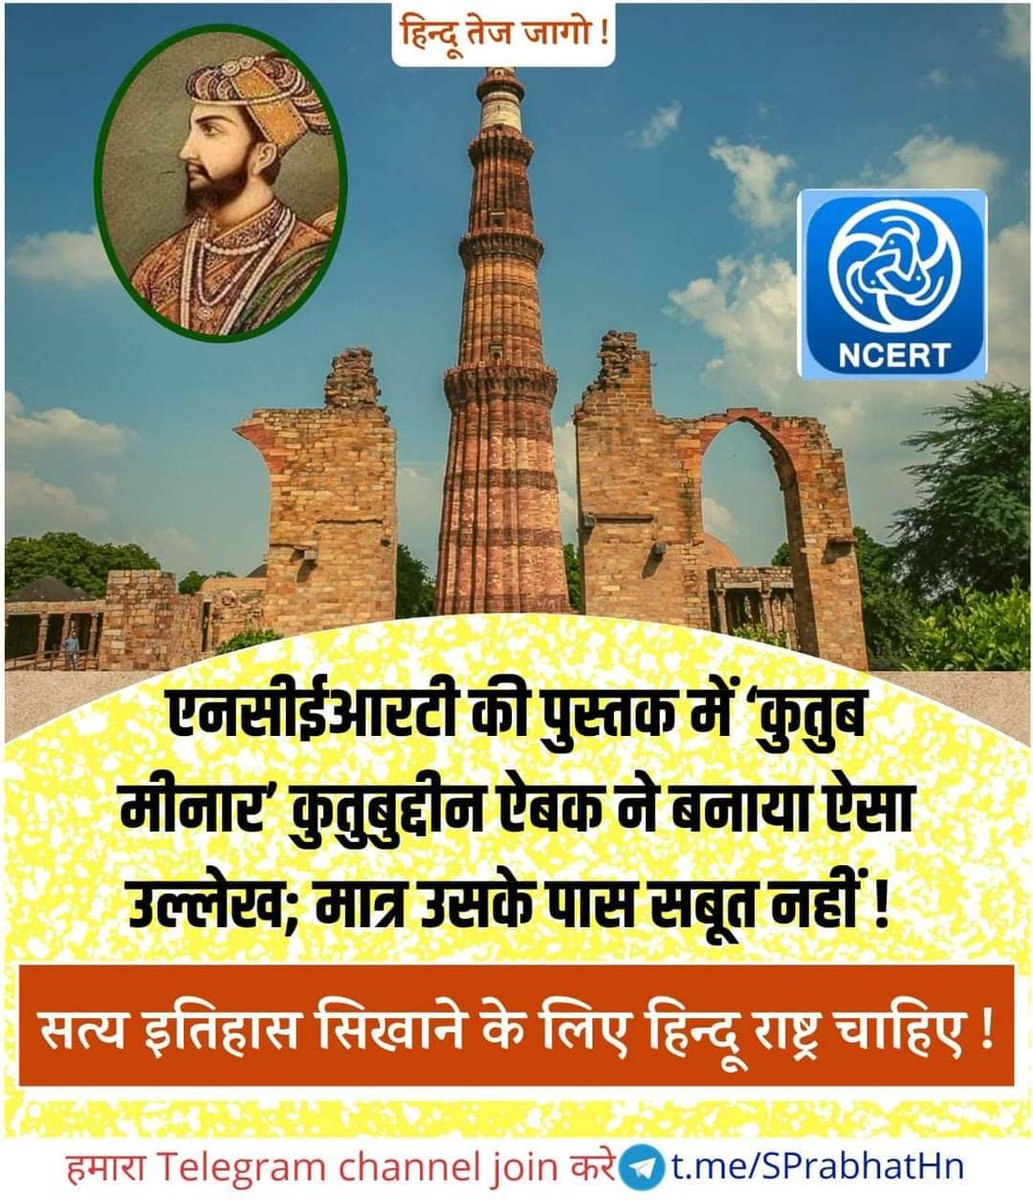 🚩 Hindu Tej Jago 🚩  #NCERT book claims 'Qutub Minar' was built by Qutubuddin Aibak, which has no substantial evidences to prove !    👉 True History will be taught in #HinduRashtra !     #thursdayvibes #ThursdayThoughts